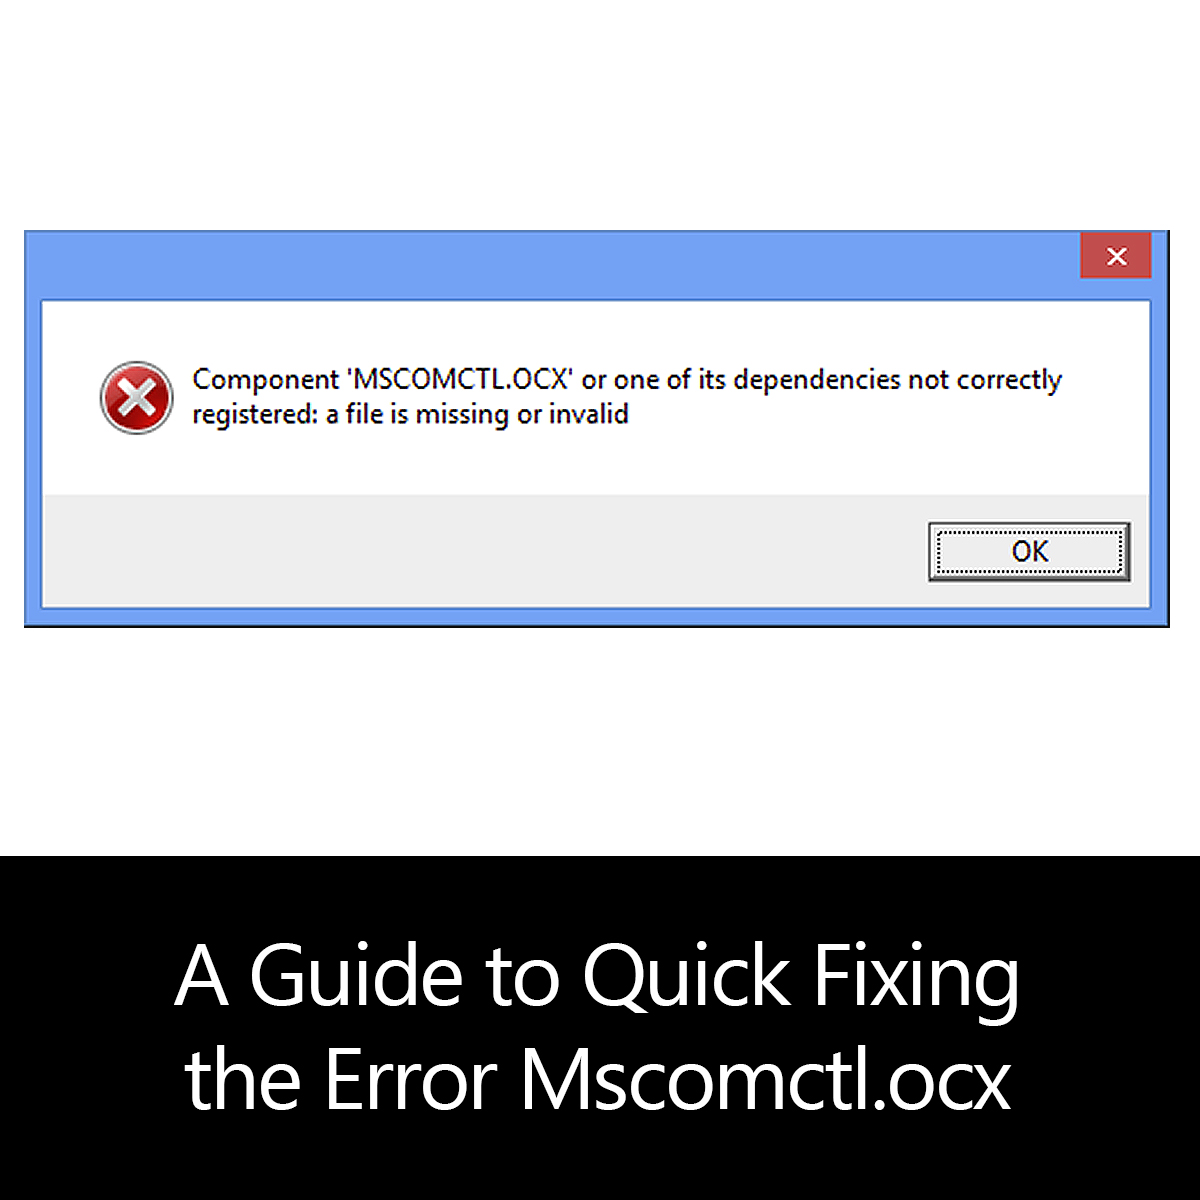 A Guide to Quick Fixing the Error Mscomctl.ocx